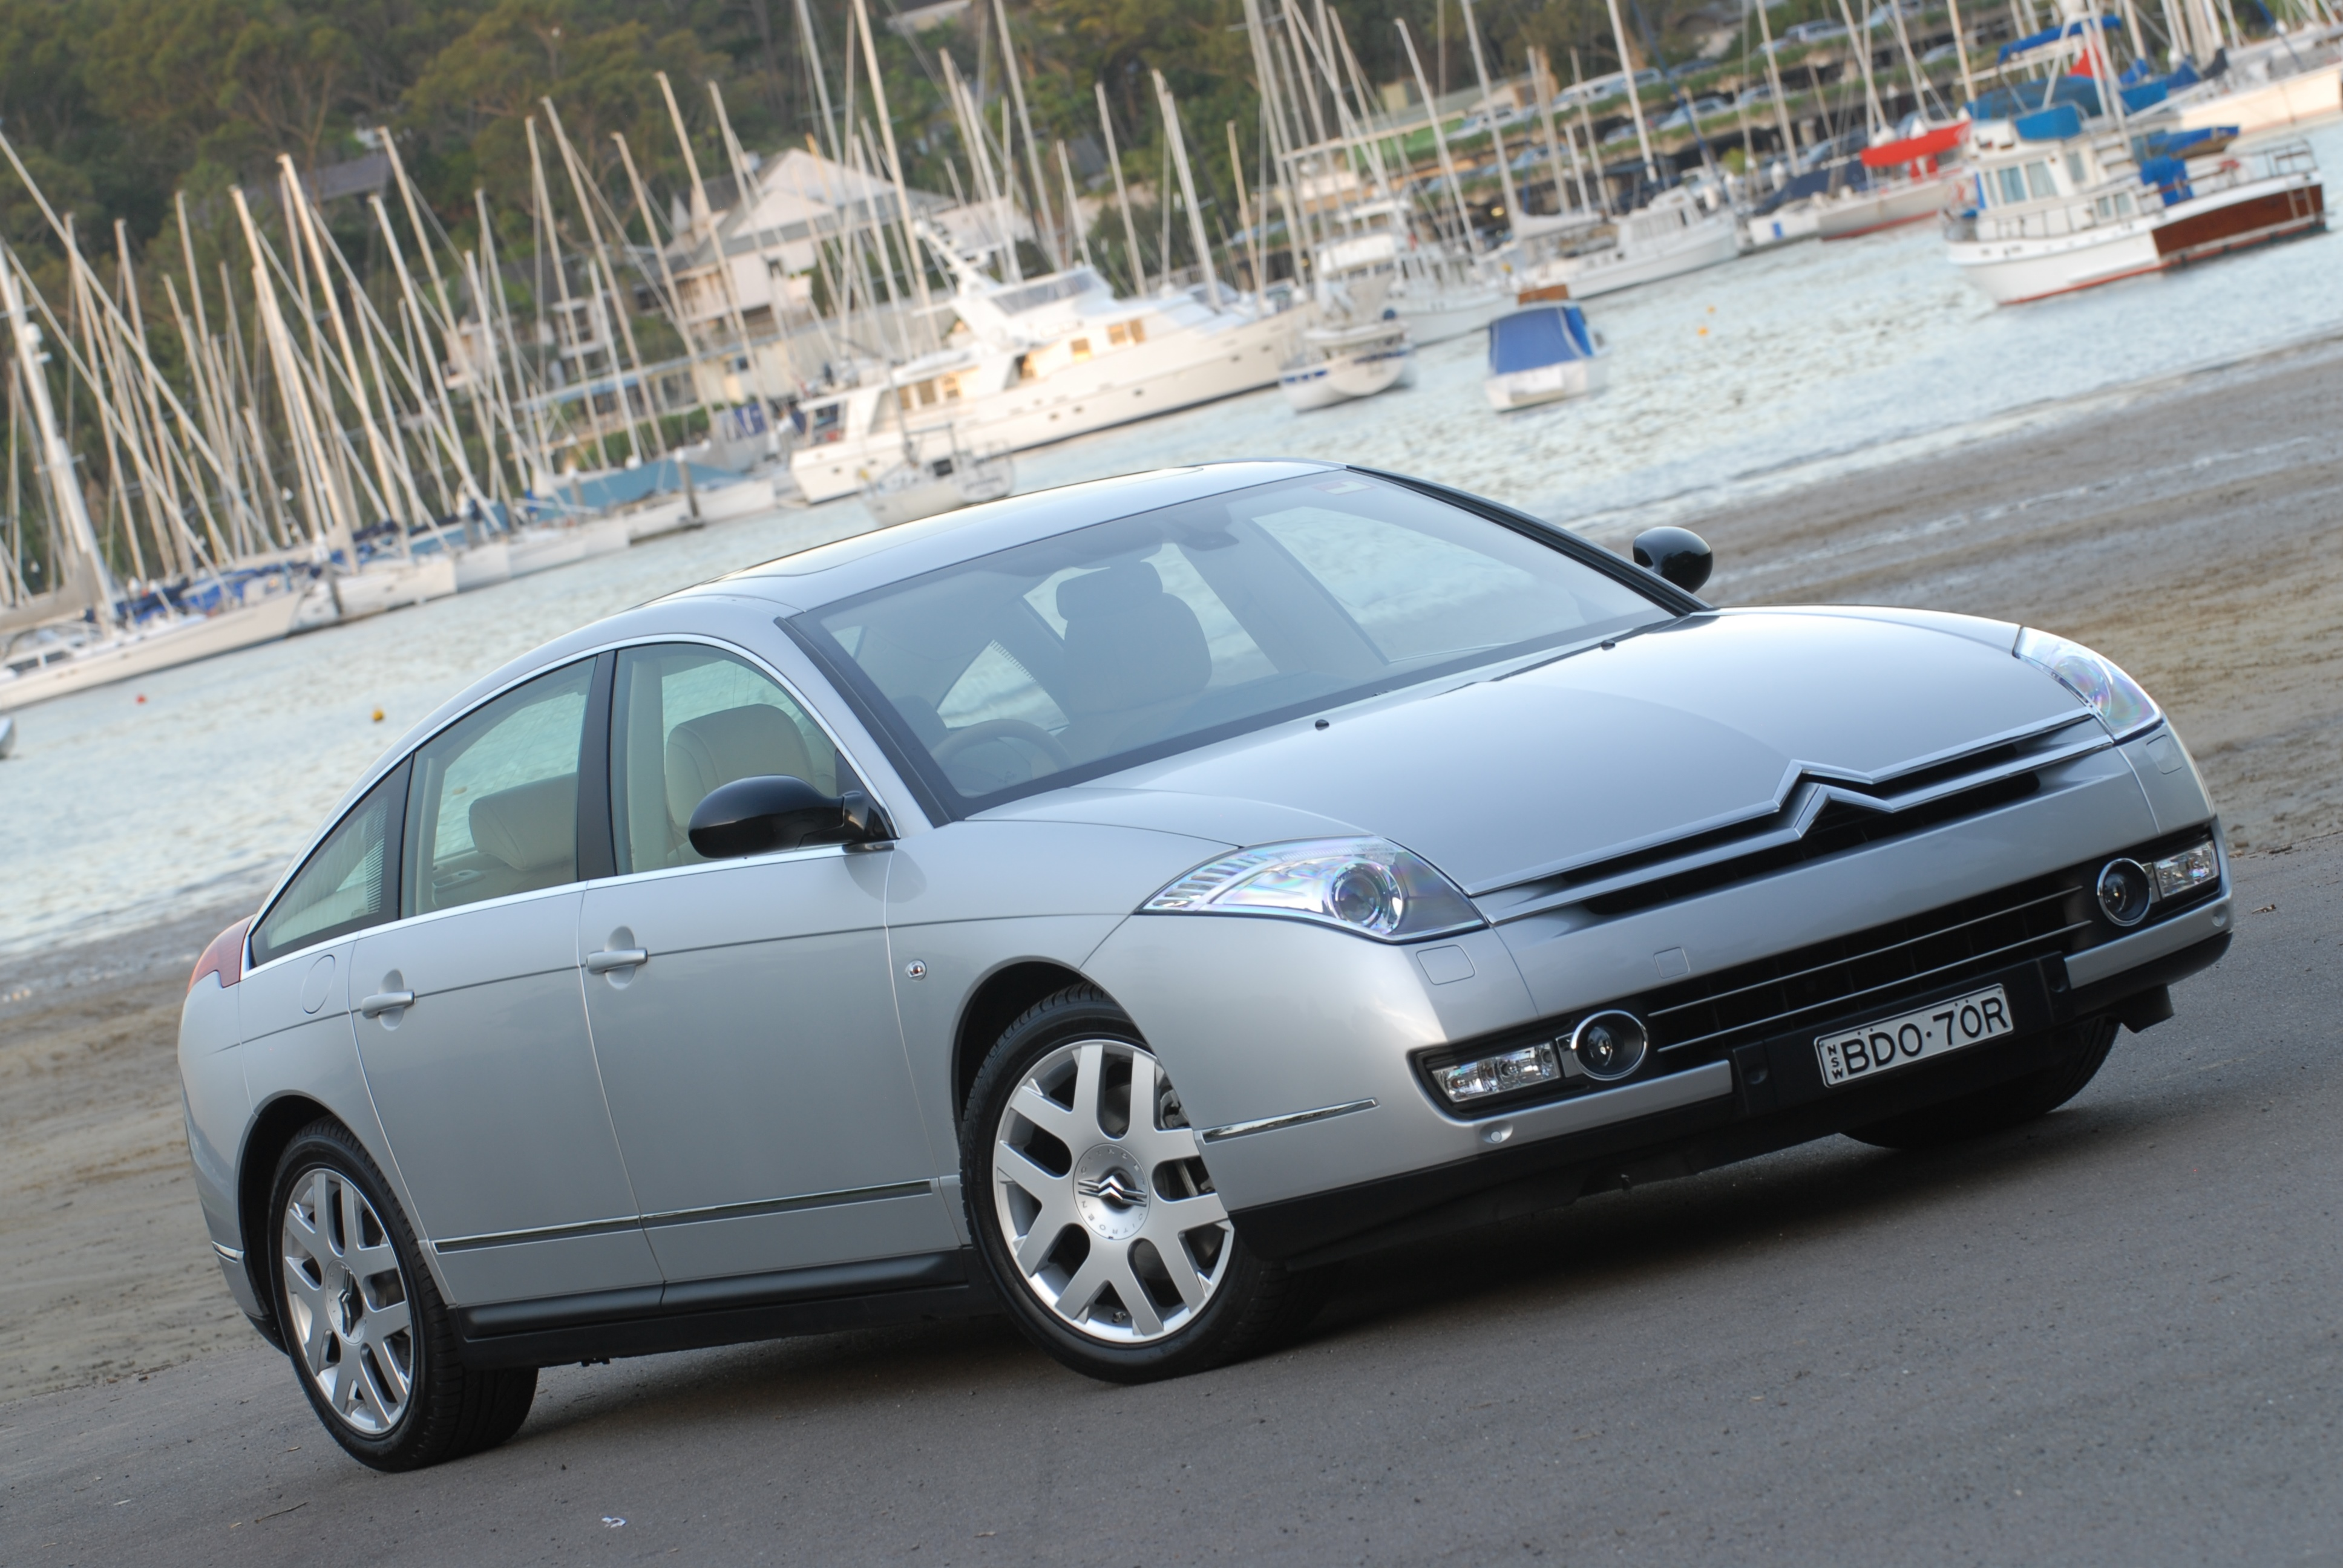 review 2011 citroen c6 hdi review and road test. Black Bedroom Furniture Sets. Home Design Ideas